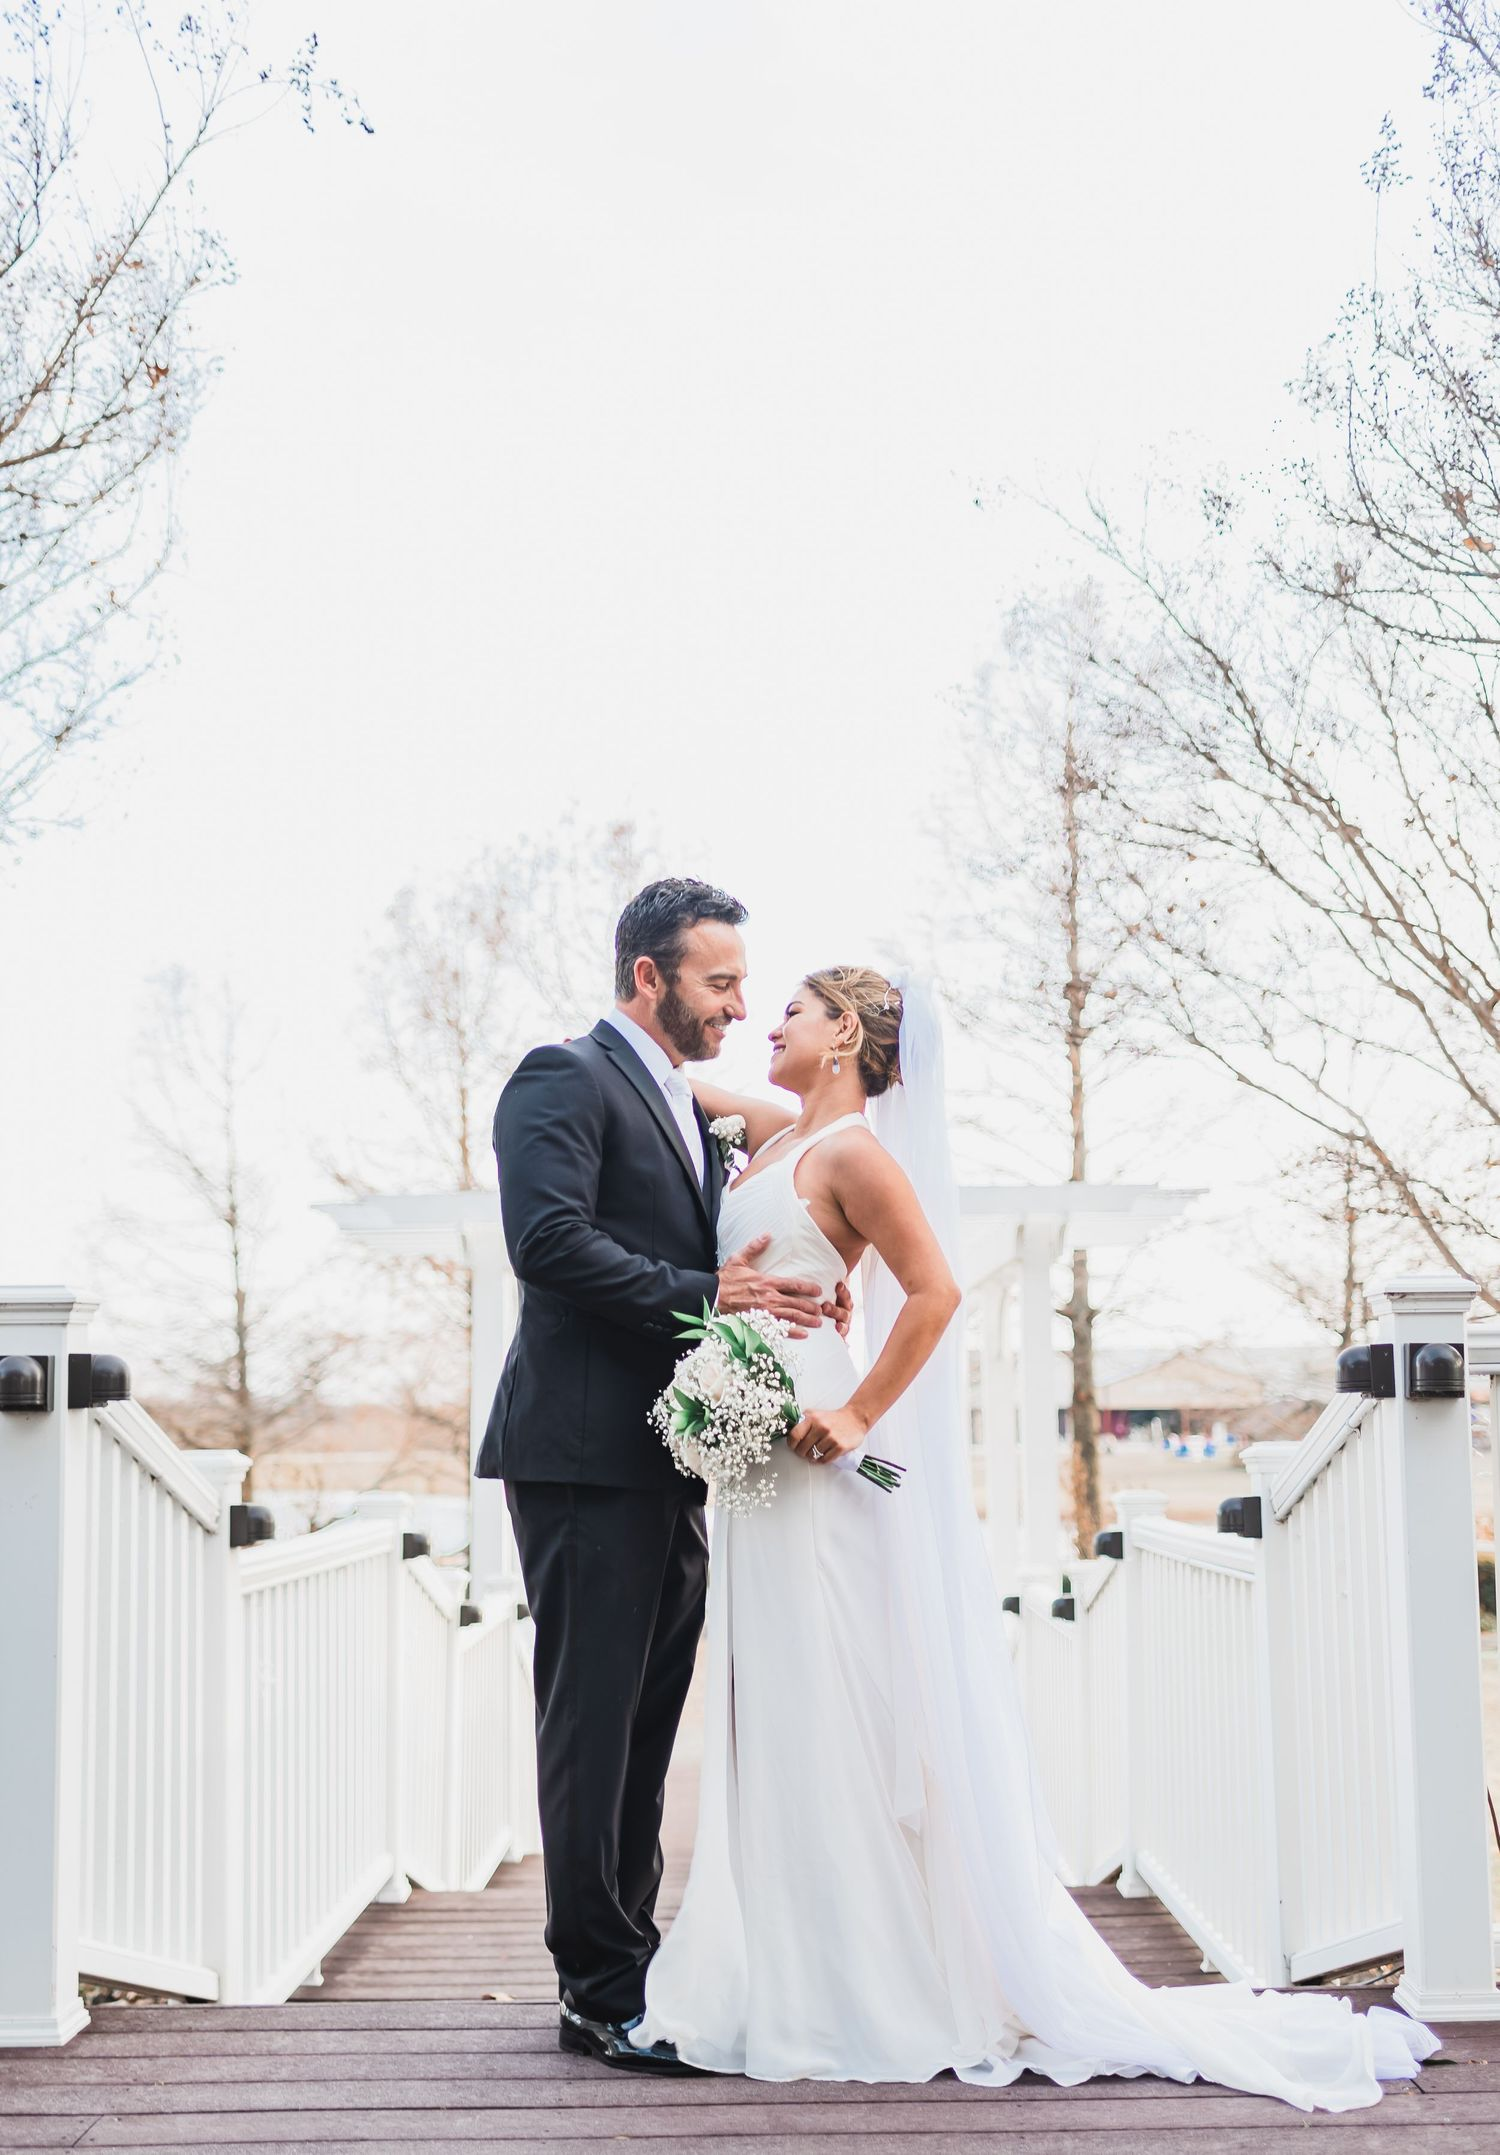 Dallas wedding photographers - The GRACE Pictures - https://www.thegrace.pictures - www.thegrace.pictures